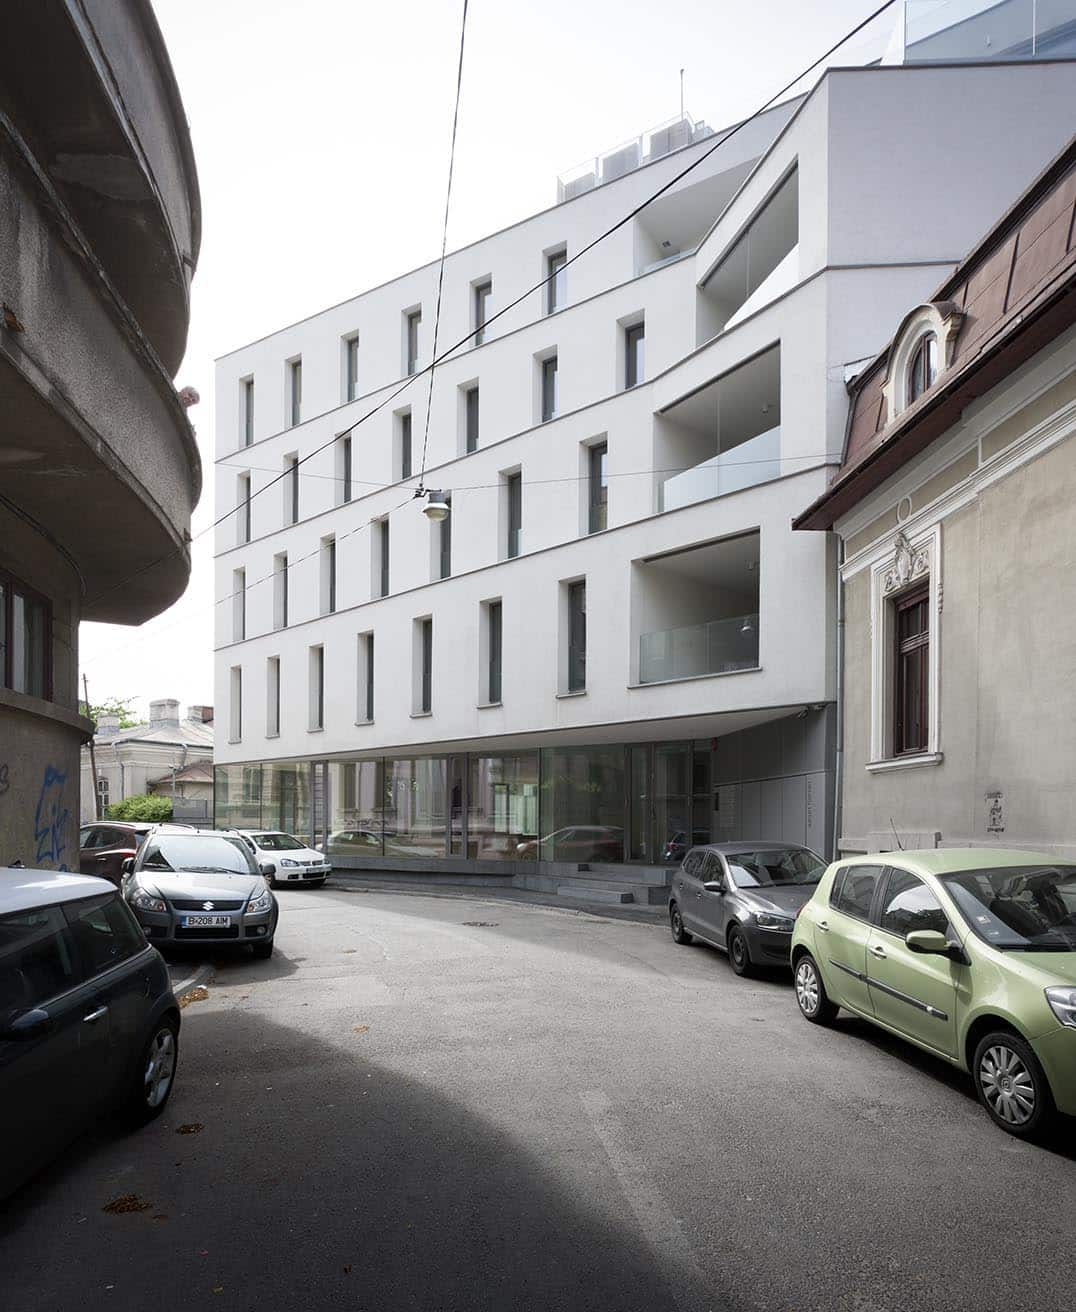 Aaron florian residential building streeet view foto © andrei margescu 2